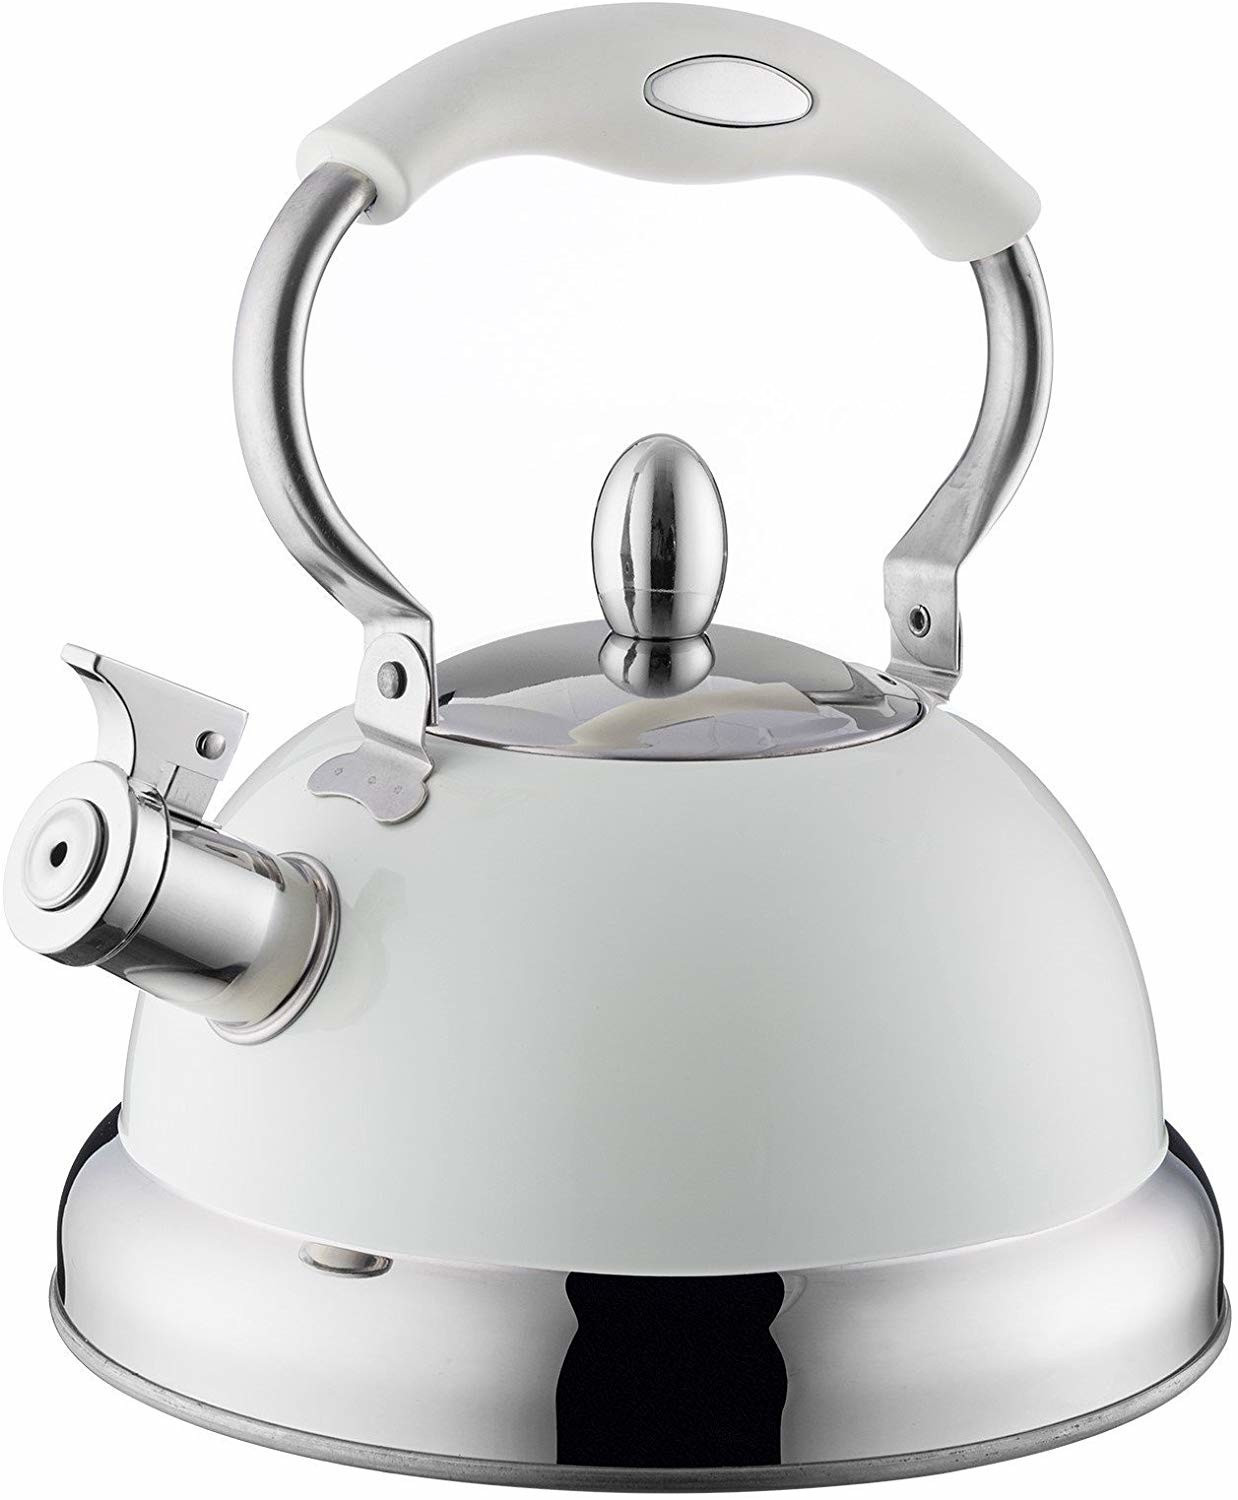 Typhoon Living Stovetop 2.5L Kettle White